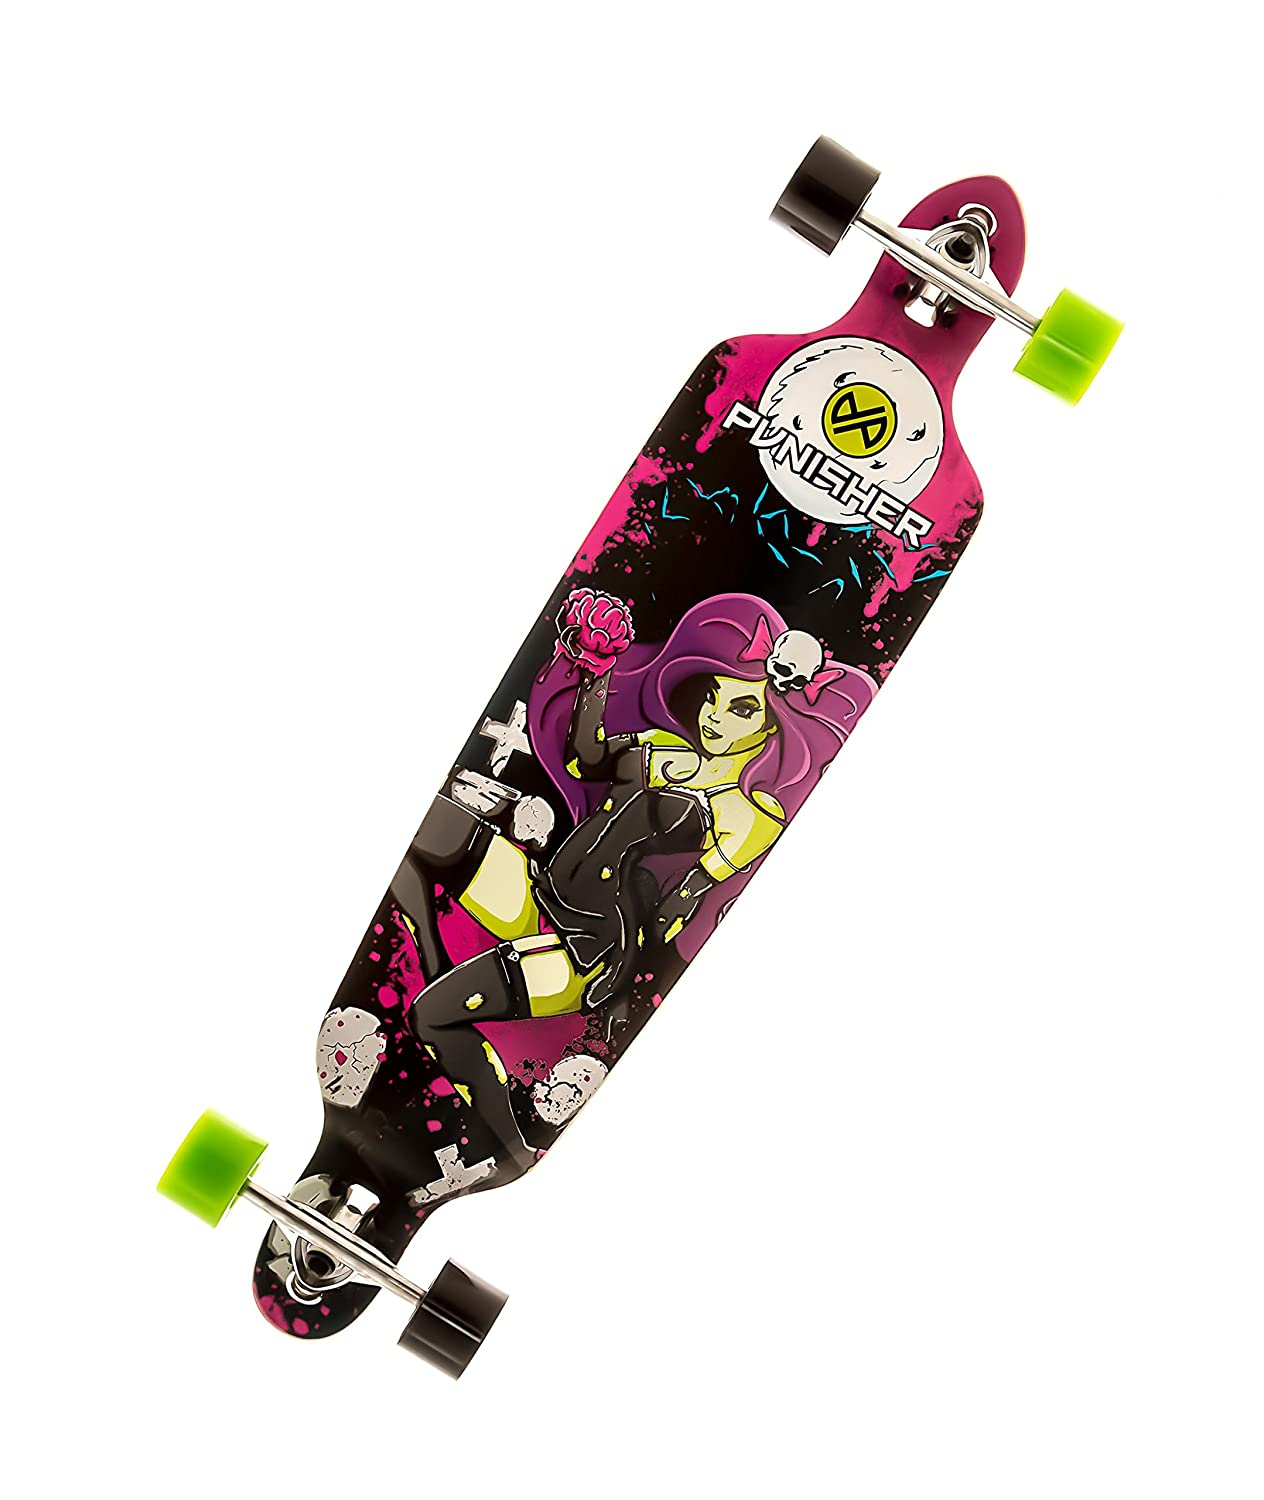 Punisher Skateboards Zombie Drop-Through Canadian Maple Longboard Skateboard with Concave Deck, Purple/Black, 40-Inch wooden 22 27 skateboards mini longboard complete peny skate board canadian maple skateboard deck adult children 4 wheel skates